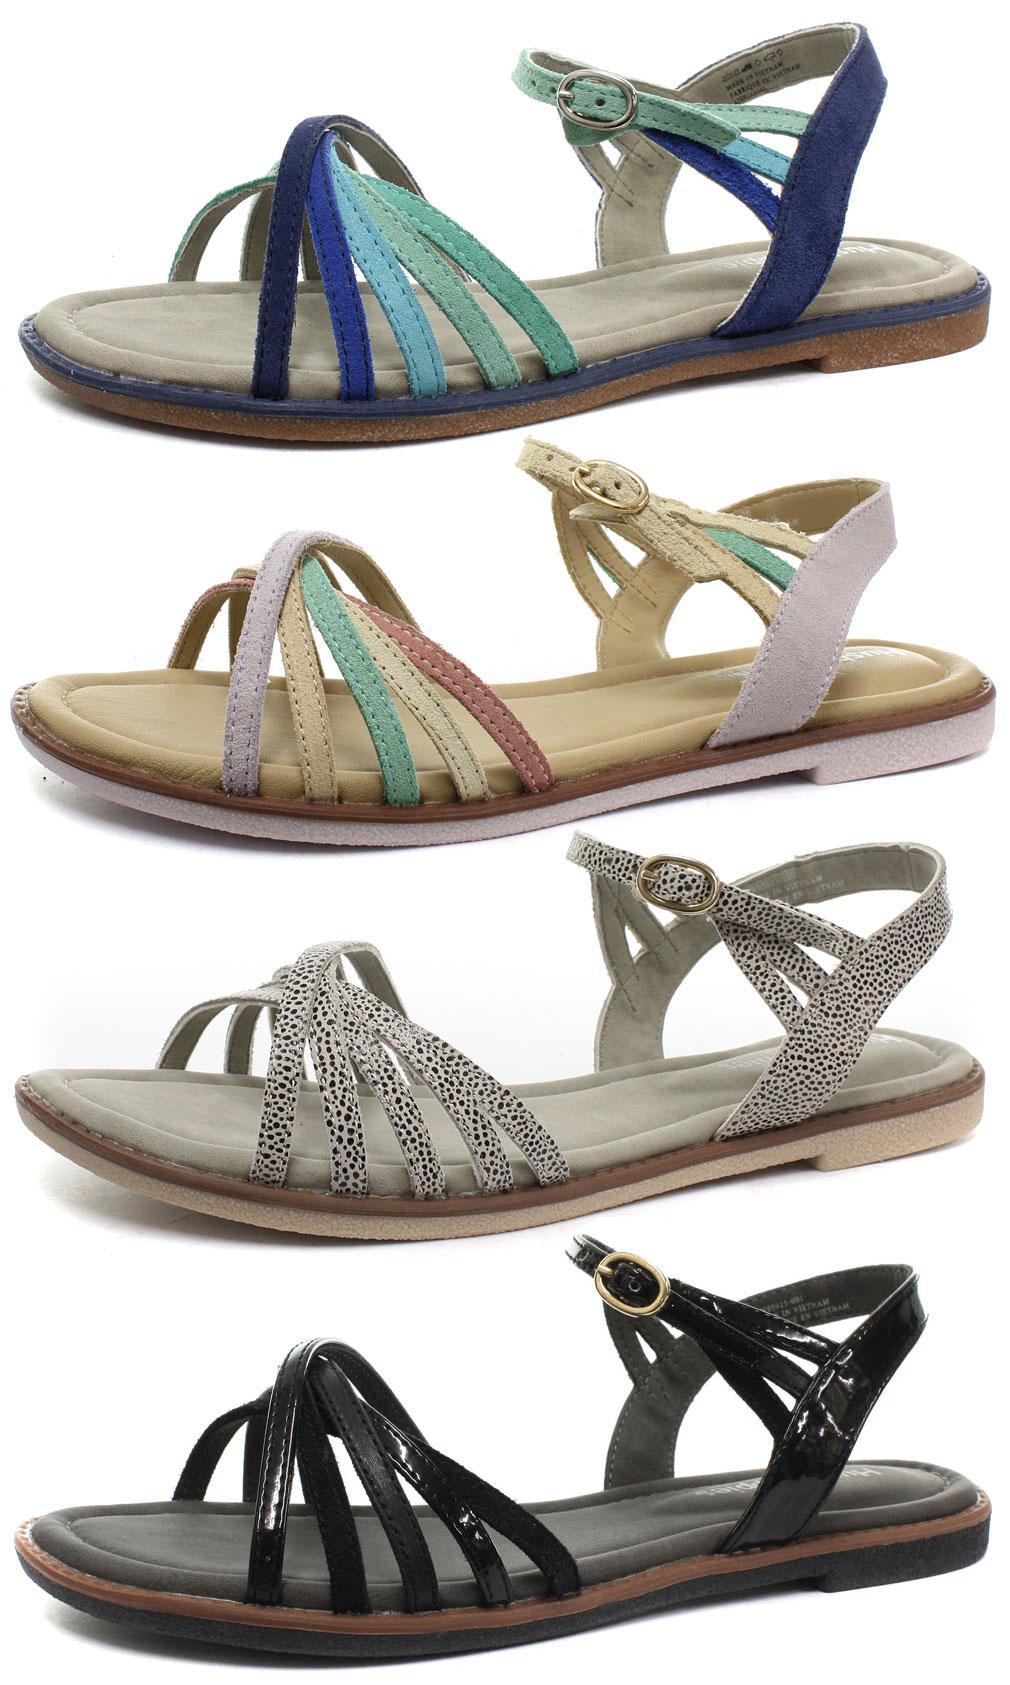 Hush Puppies Caposhi Qtr Strap Womens Sandals All Sizes